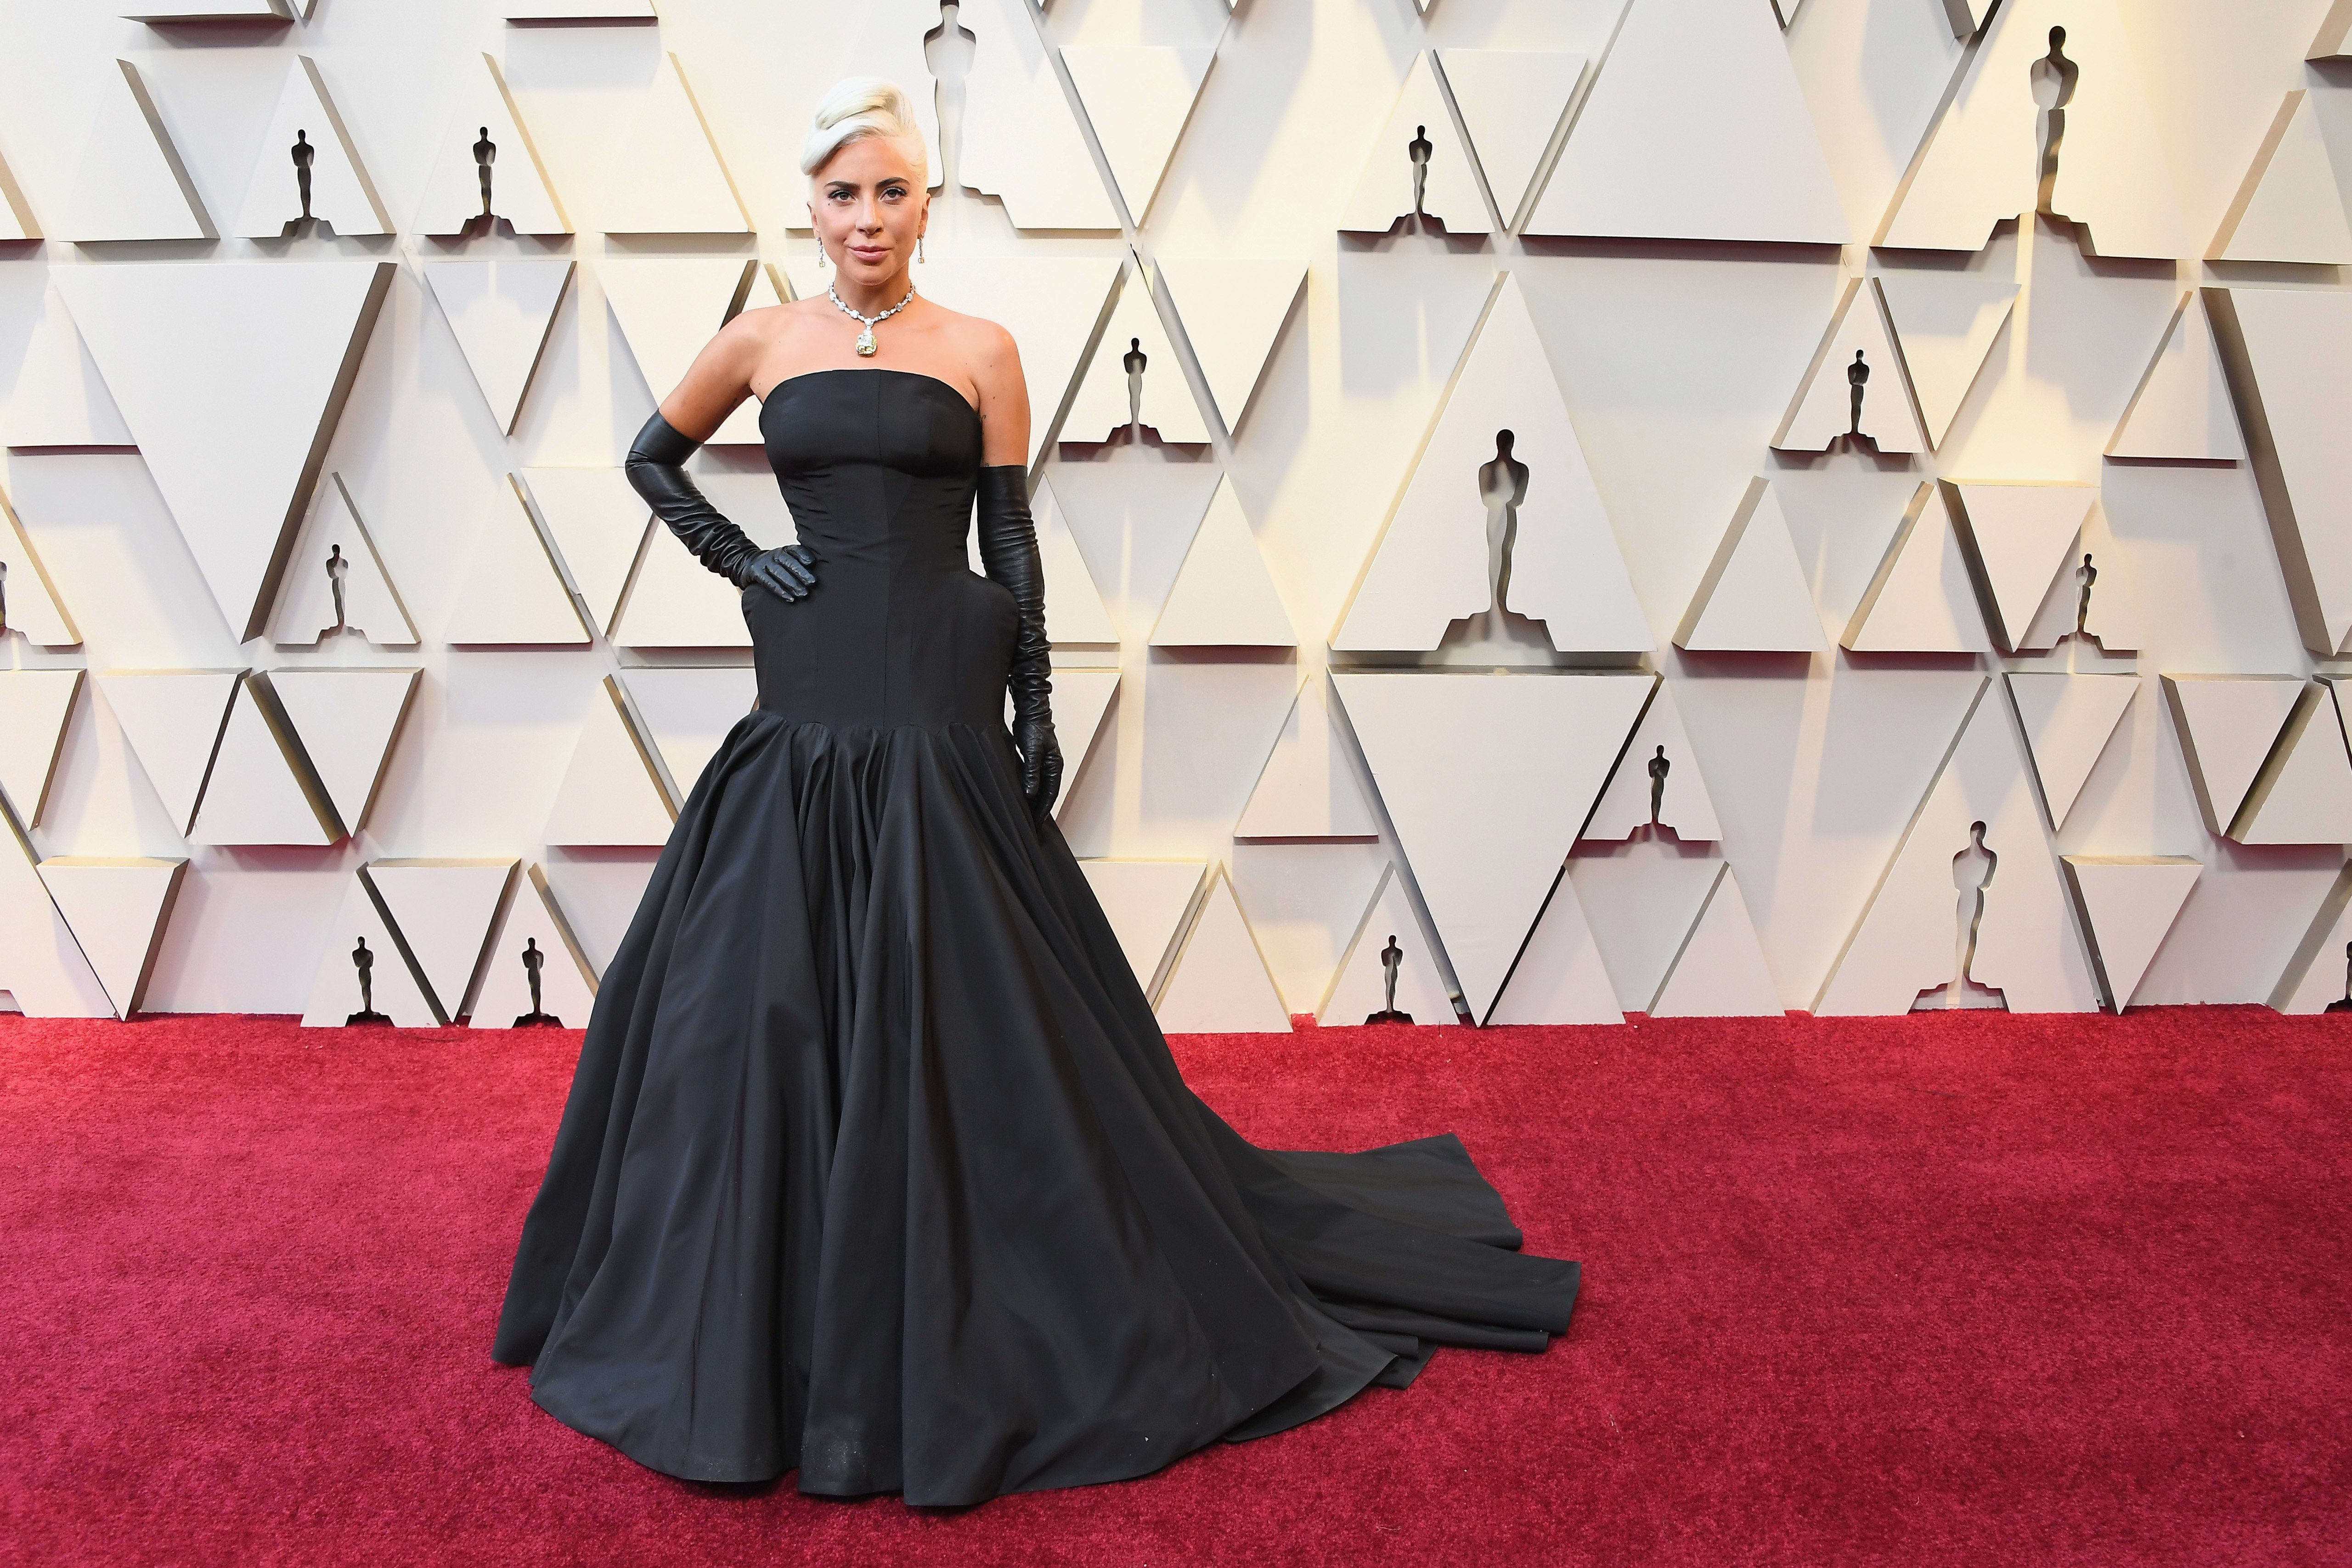 Lady Gaga in a  dramatic black gown at the 2019 oscars | Photo: Getty Images